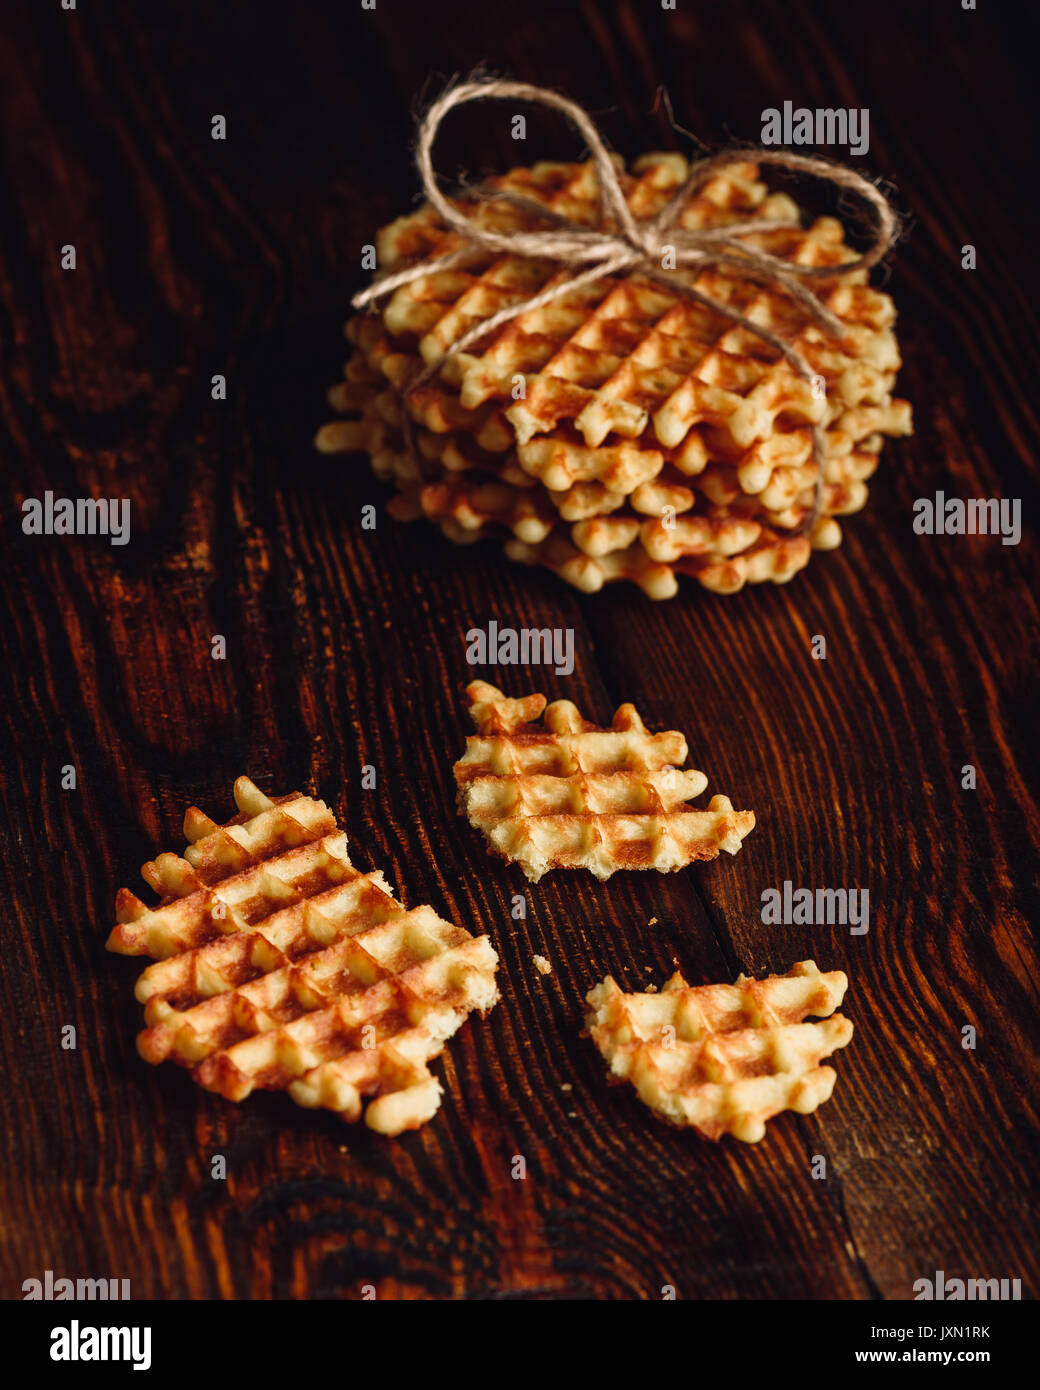 Stack of Belgian Waffles and Waffle Pieces on Wooden Surface. Vertical Orientation. - Stock Image